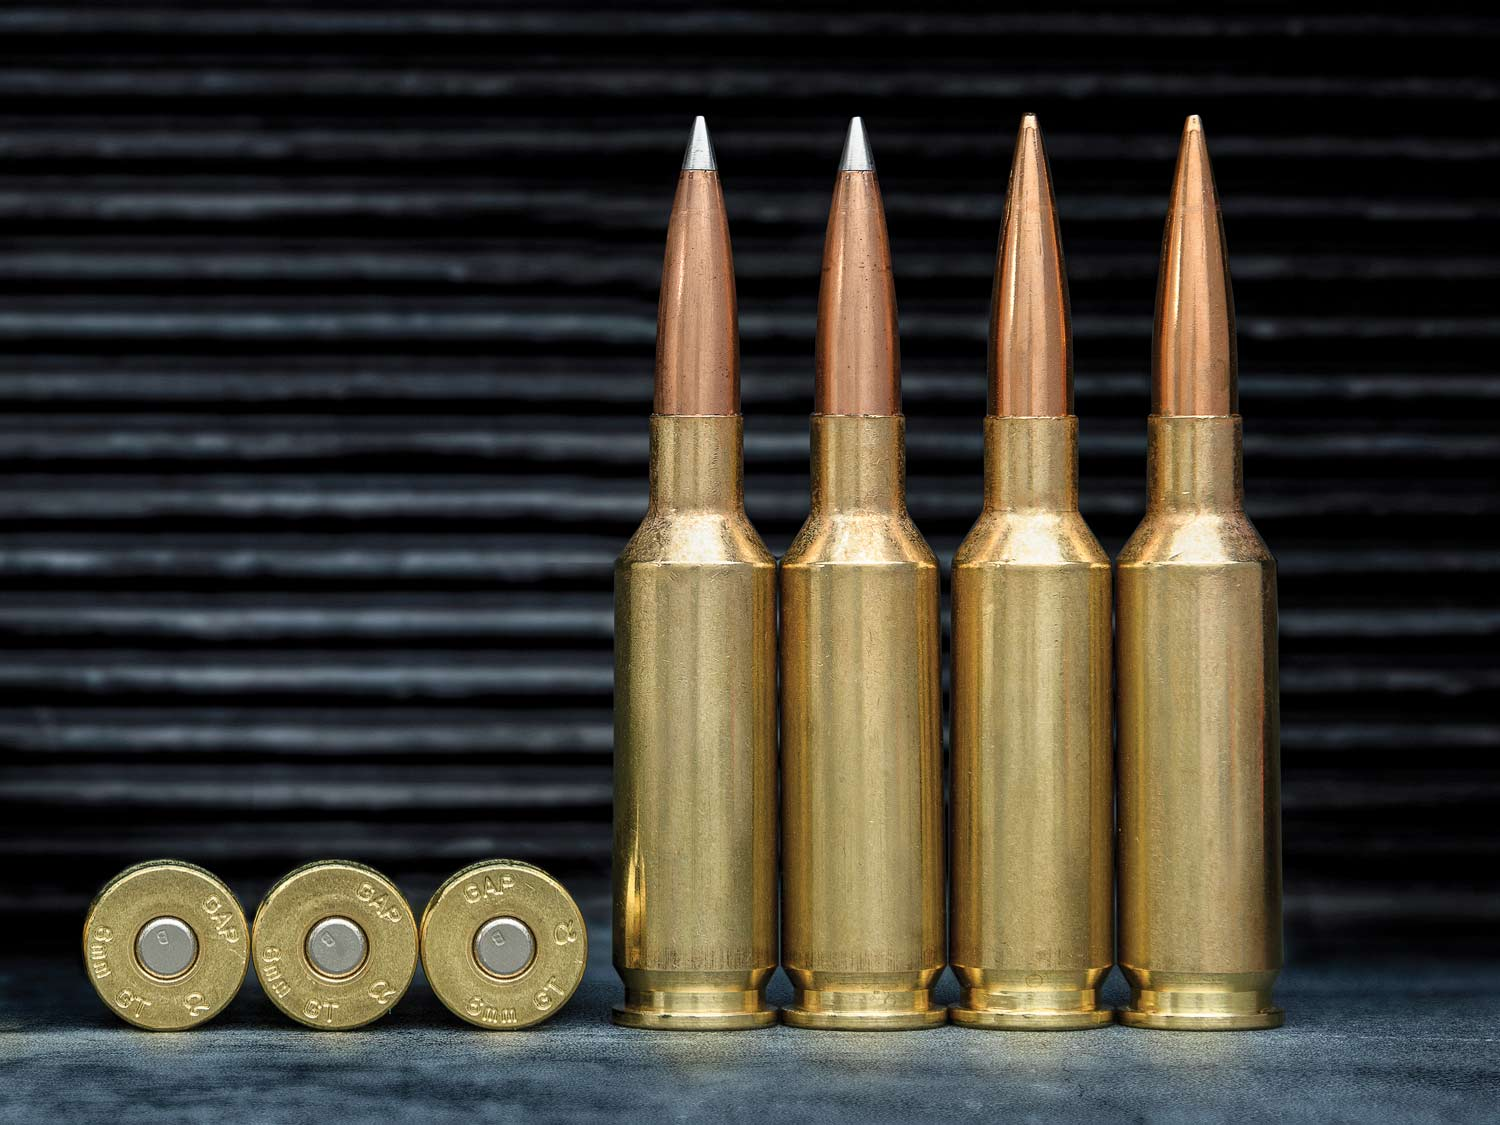 A lineup of rifle cartridges against a ridged black background.